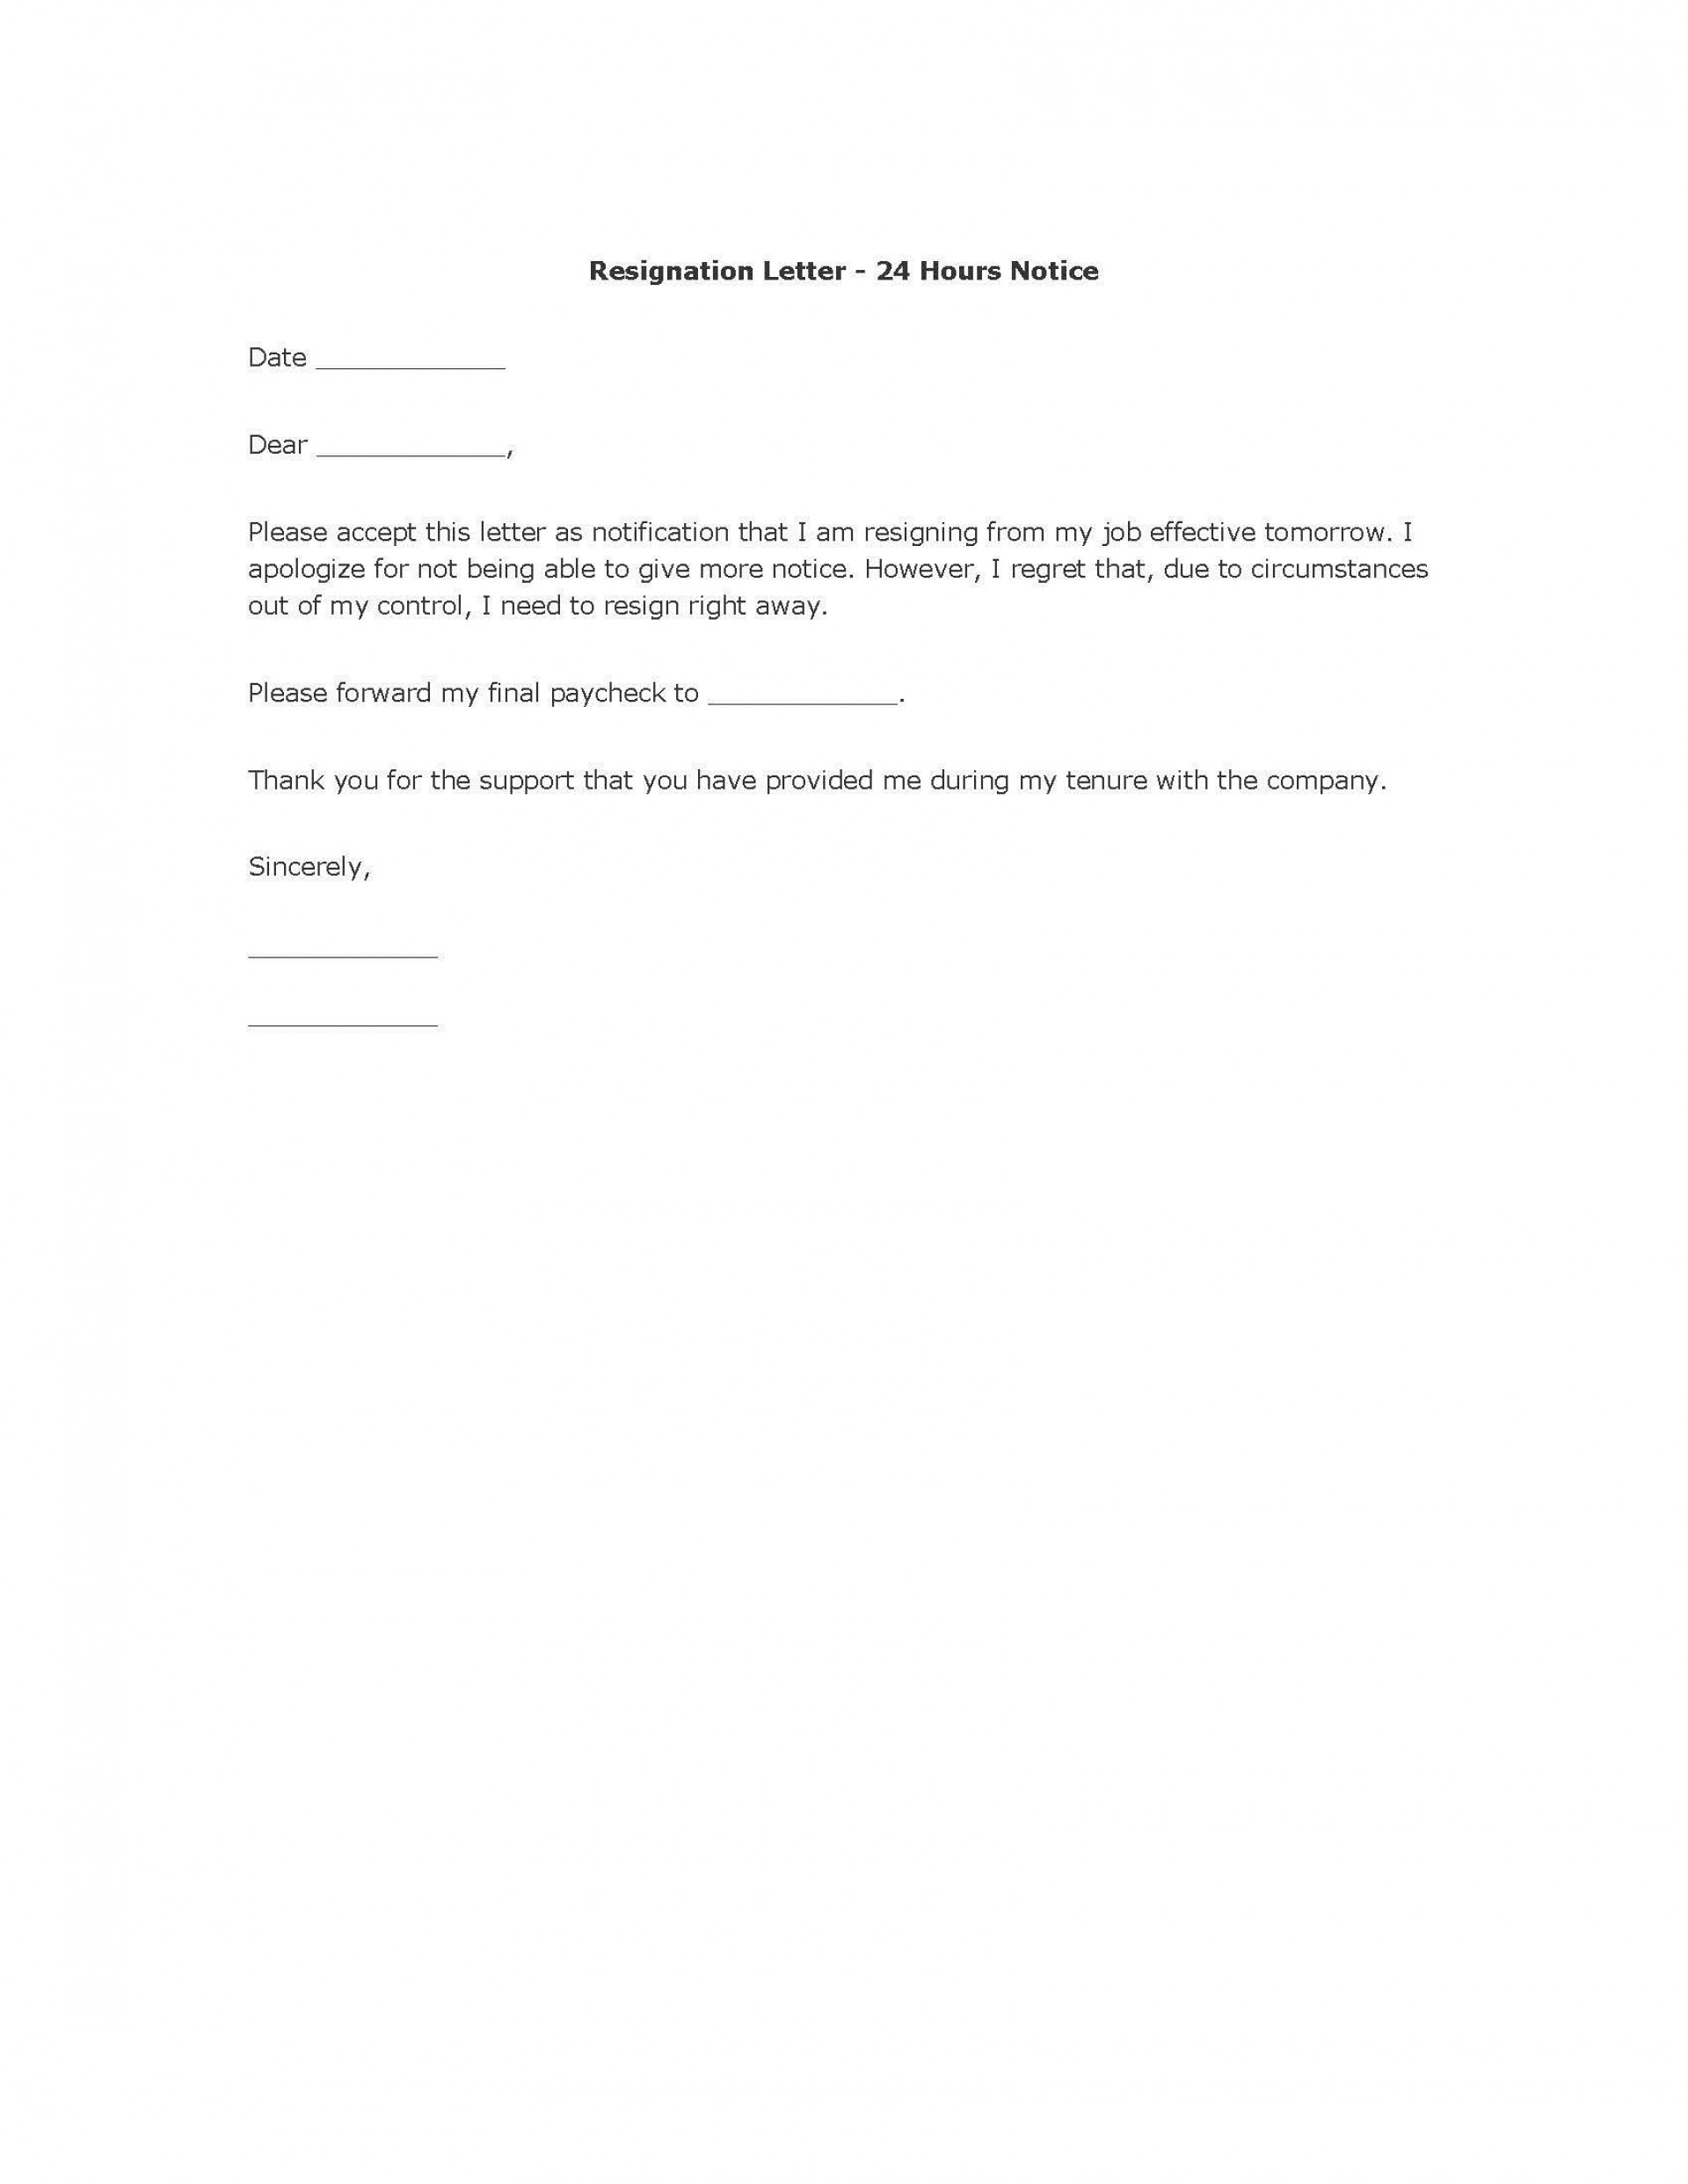 004 Unbelievable Template For Letter Of Resignation Picture  Free With Notice Period Word1920